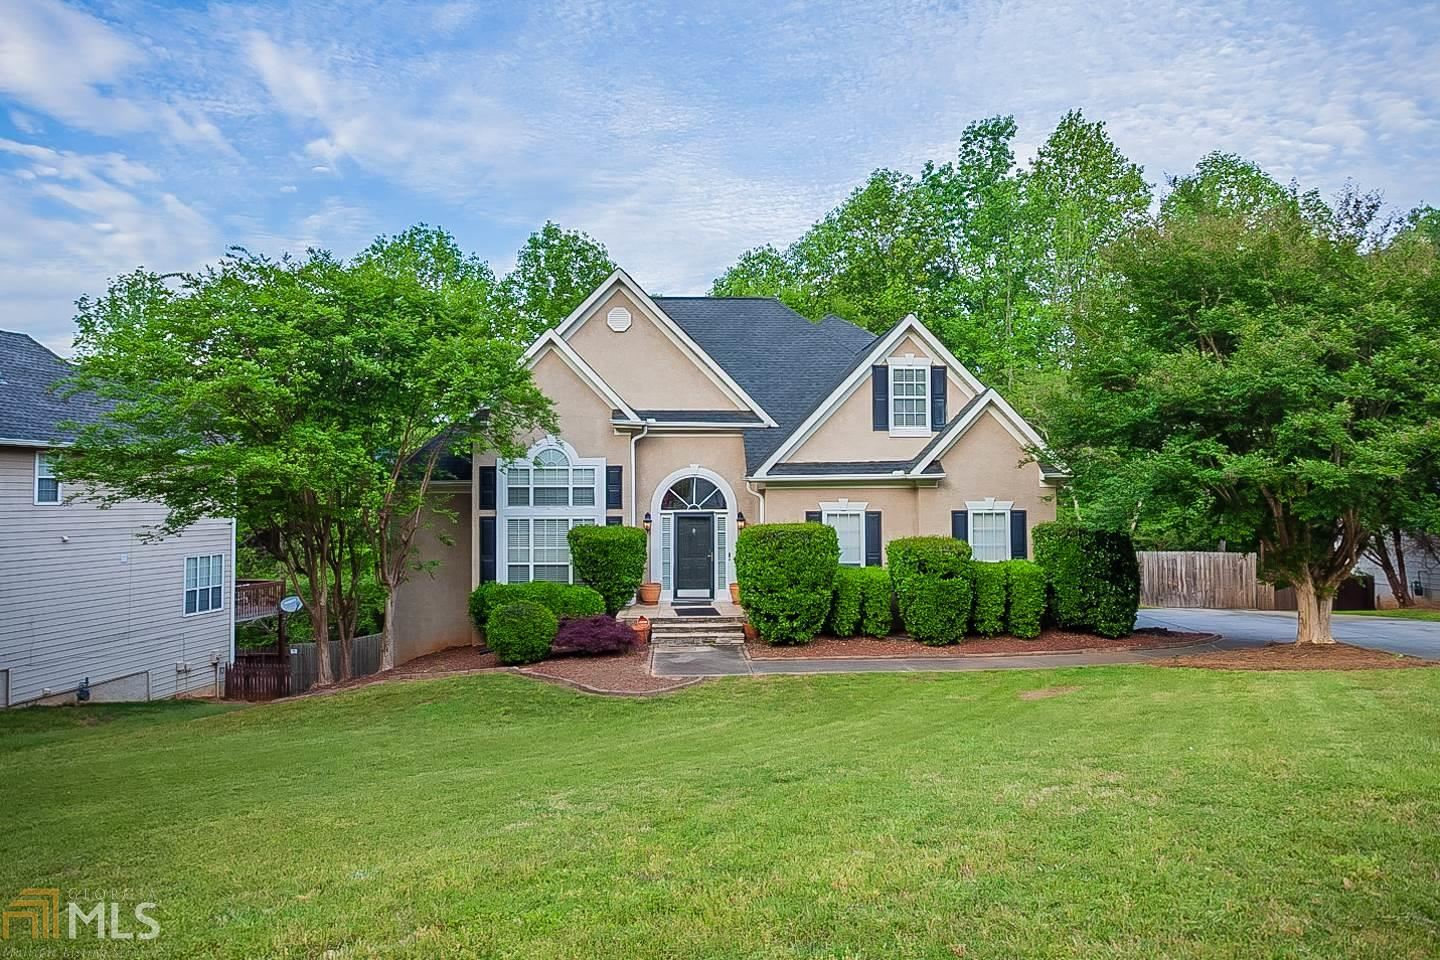 105 Sycamore, Stockbridge, GA 30281 - #: 8963588